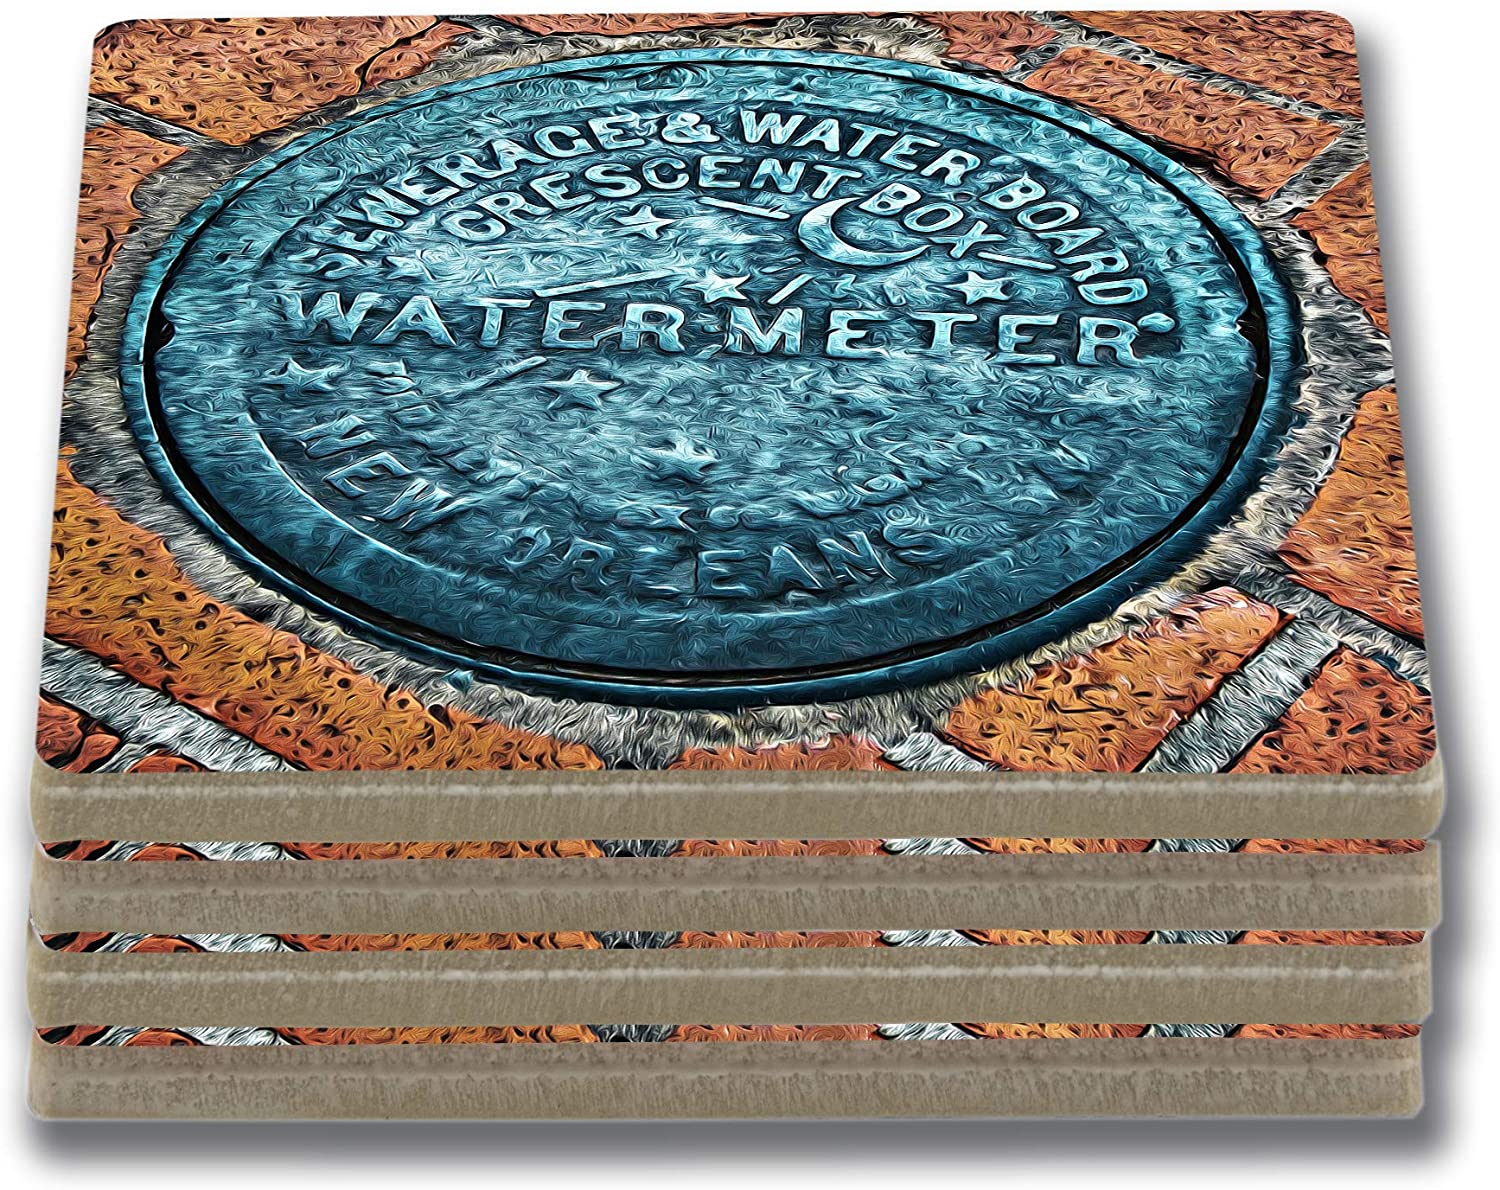 EXIT82ART - Stone Drink Coasters (Set of 4) New Orleans French Quarter Water Meter. Tumbled Stone, Cork-backed.